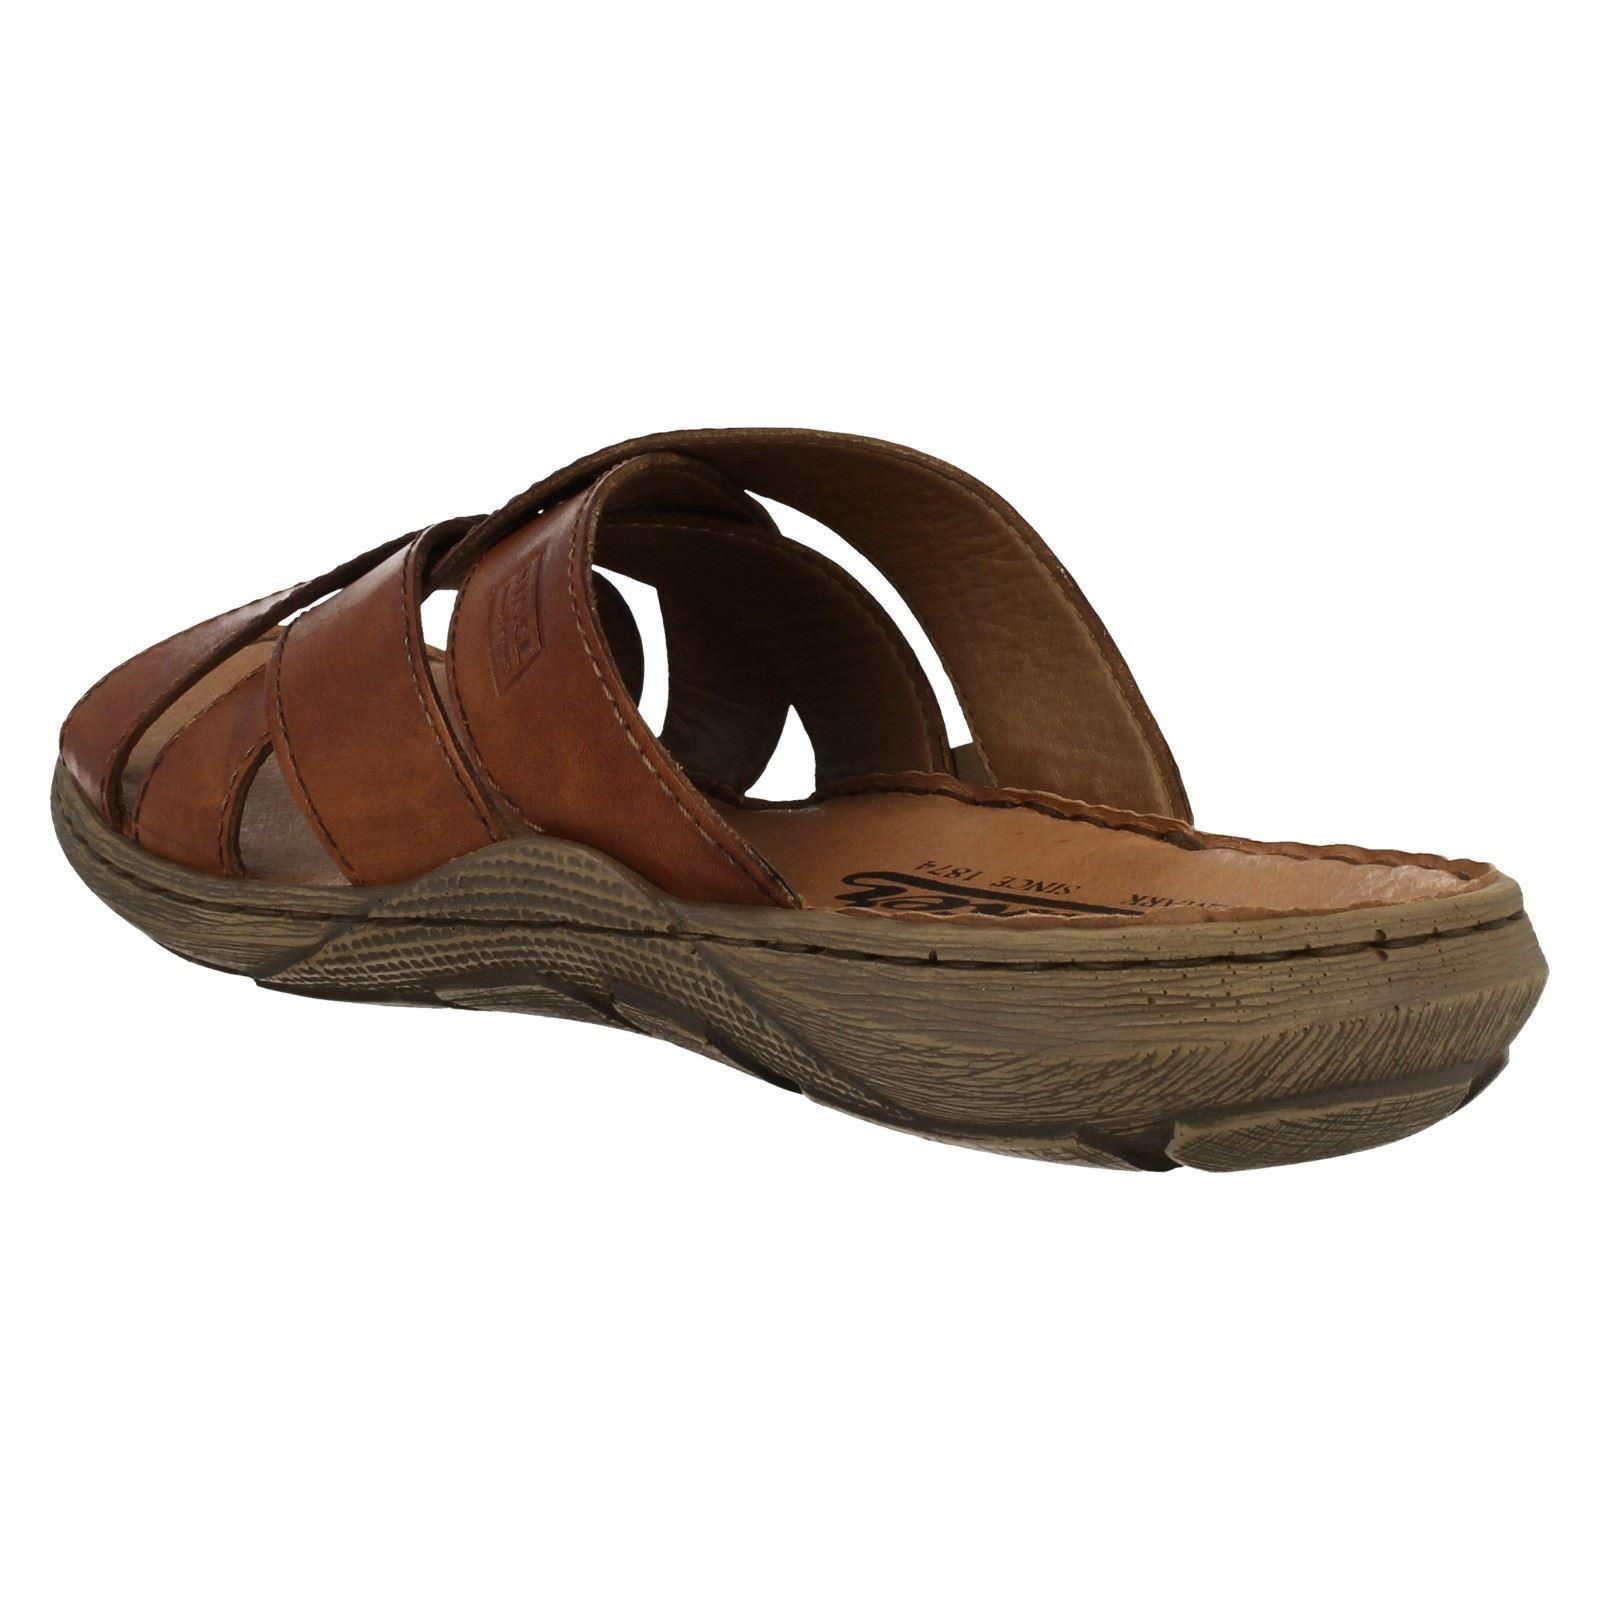 Sandals Marrone Mens Summer Slip On 22098 Rieker x1YqIYwng